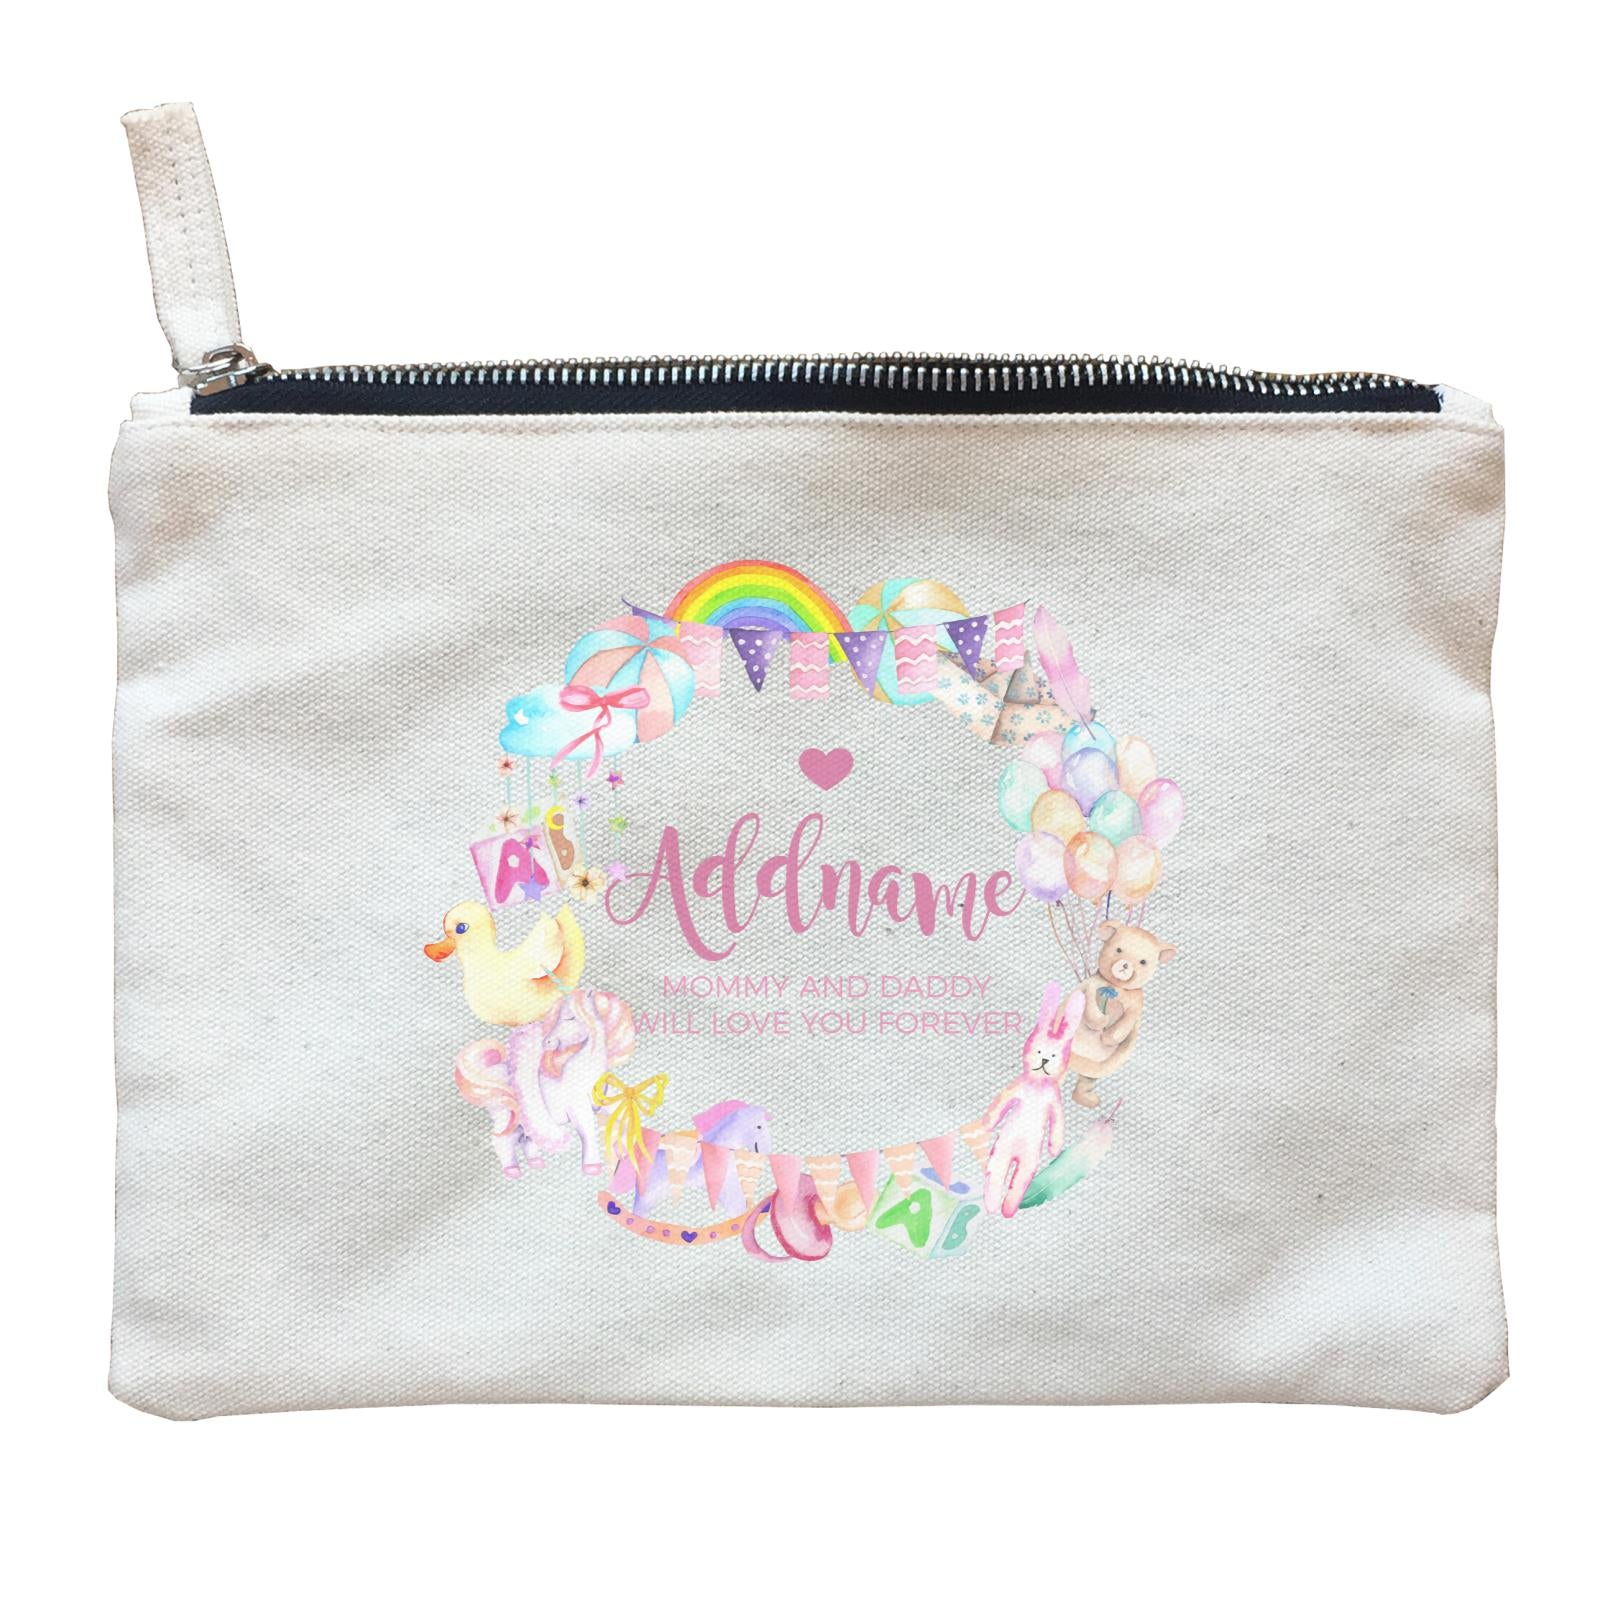 Watercolour Magical Girlish Creatures and Elements Personalizable with Name and Text Zipper Pouch